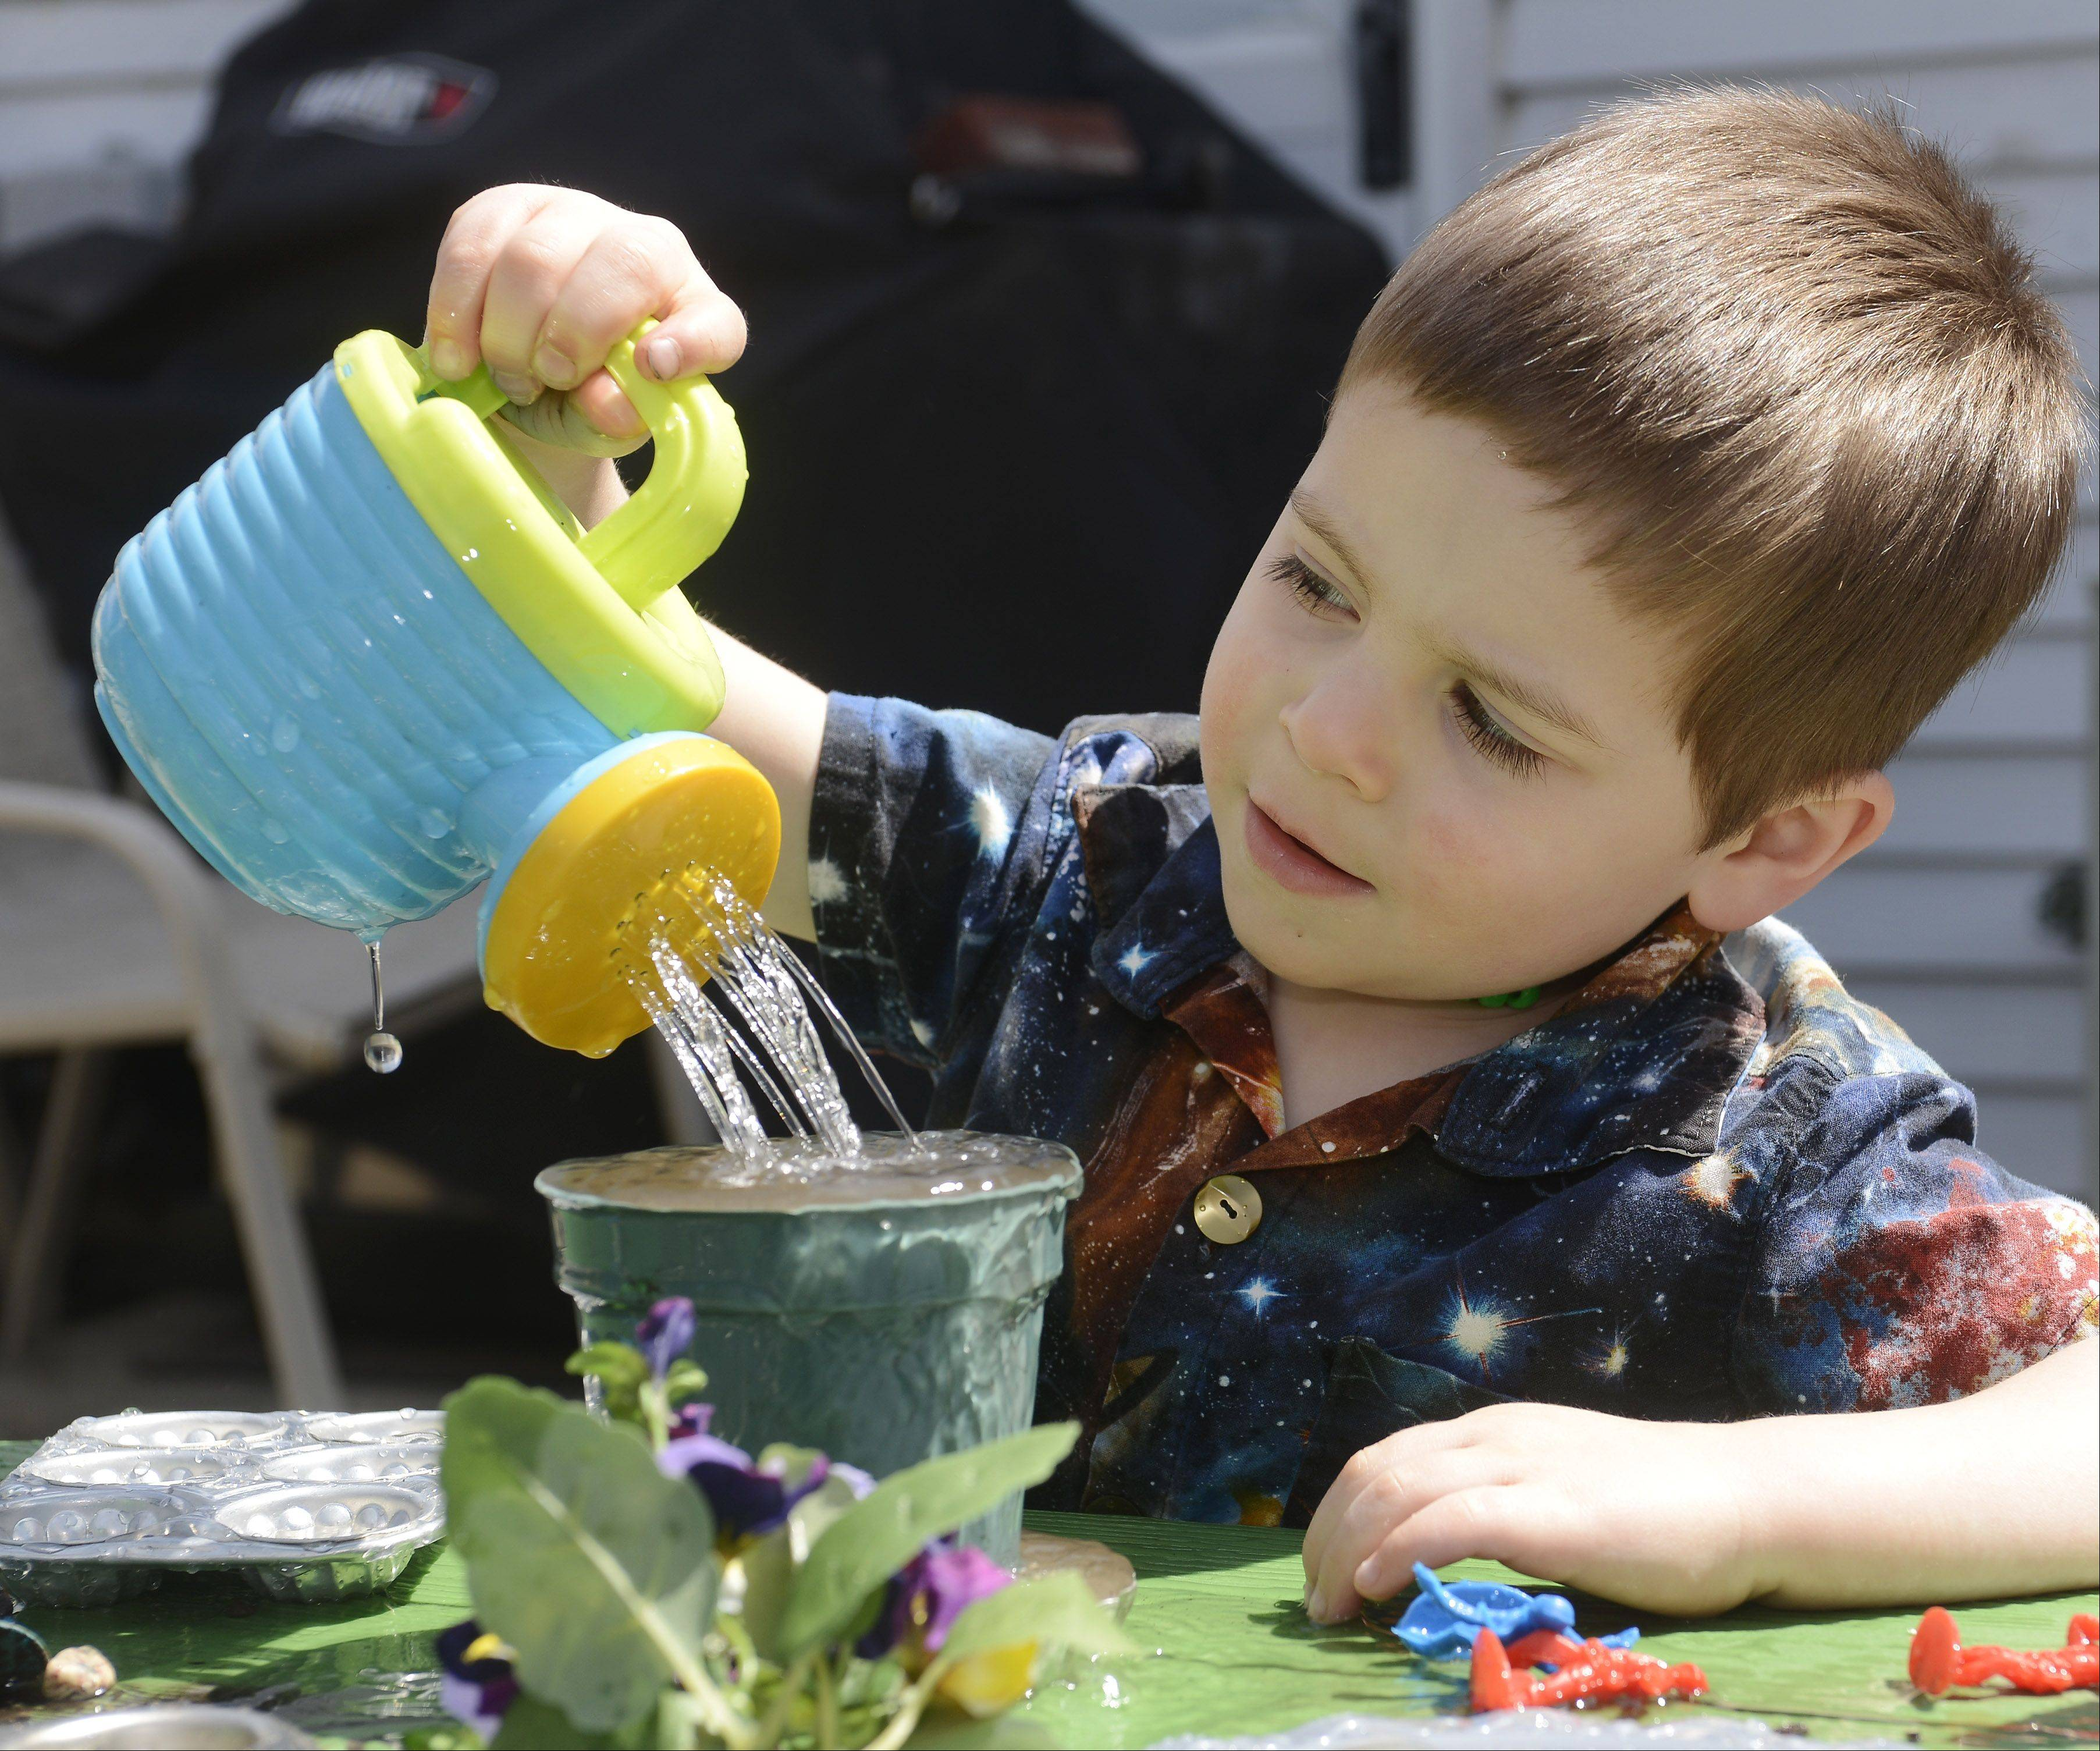 Justin Anderson, 3, combines mud with plenty of water while playing at his Schaumburg home.